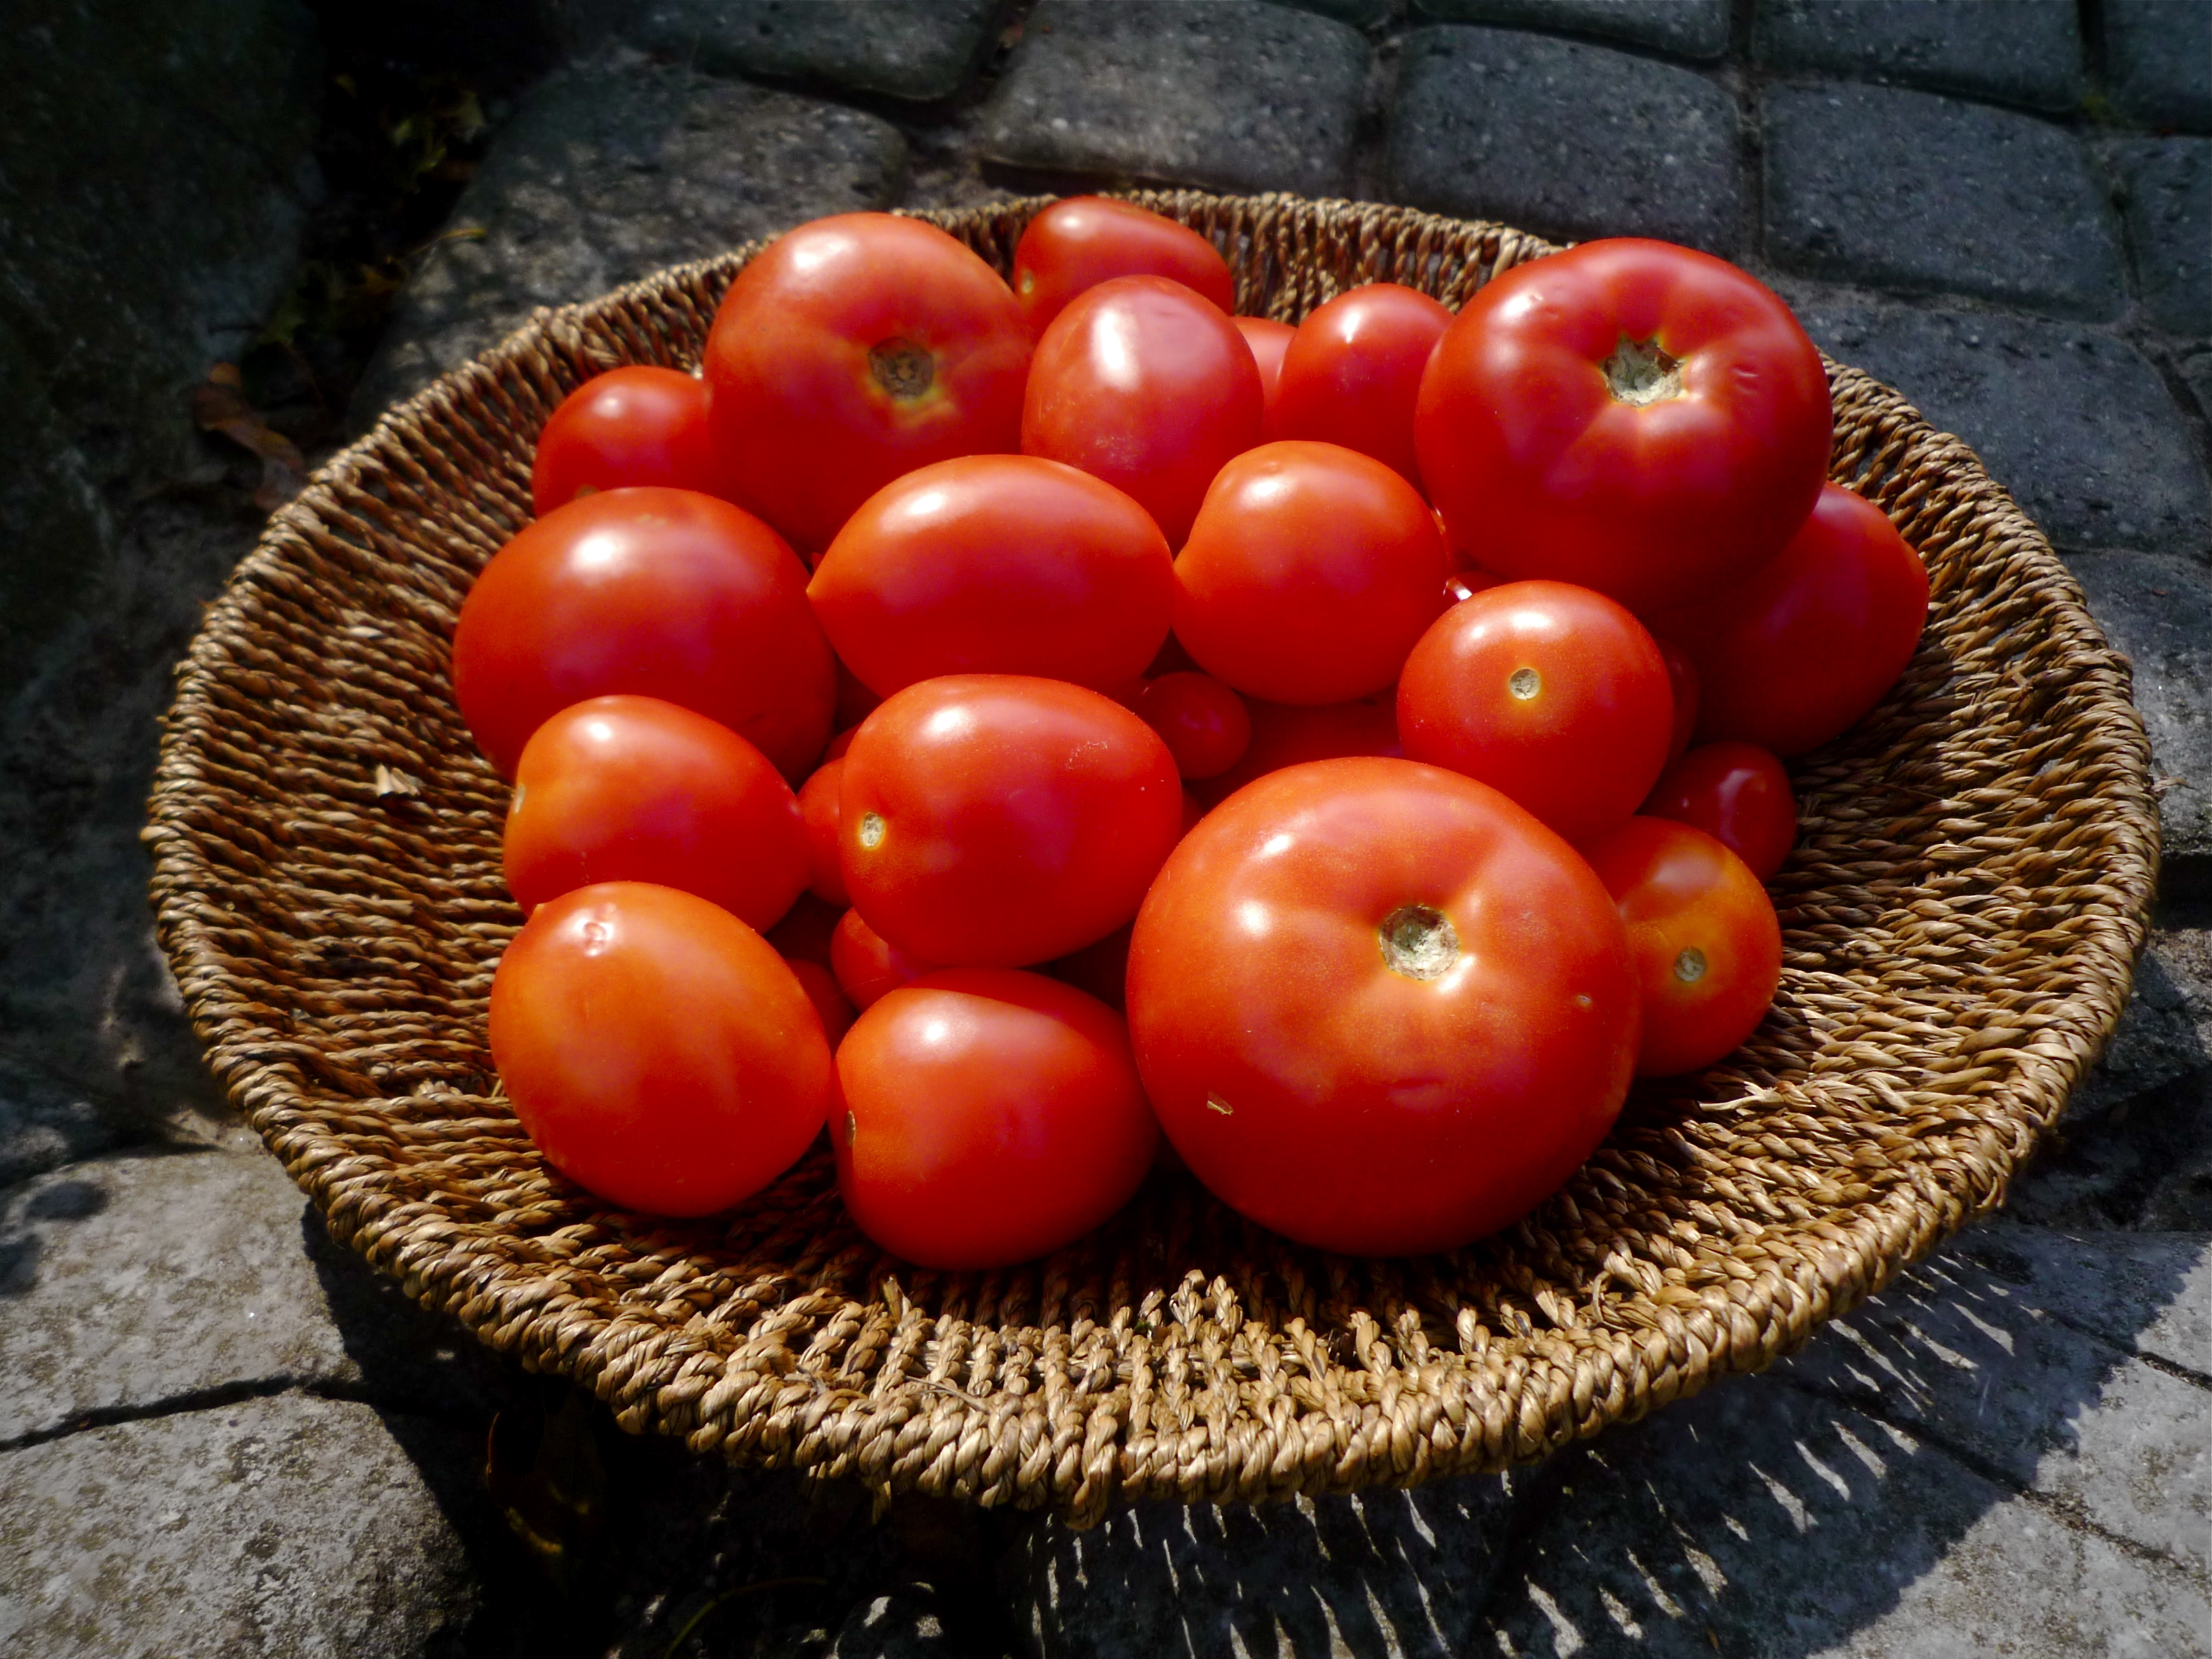 A basket of tomatoes, September 2009